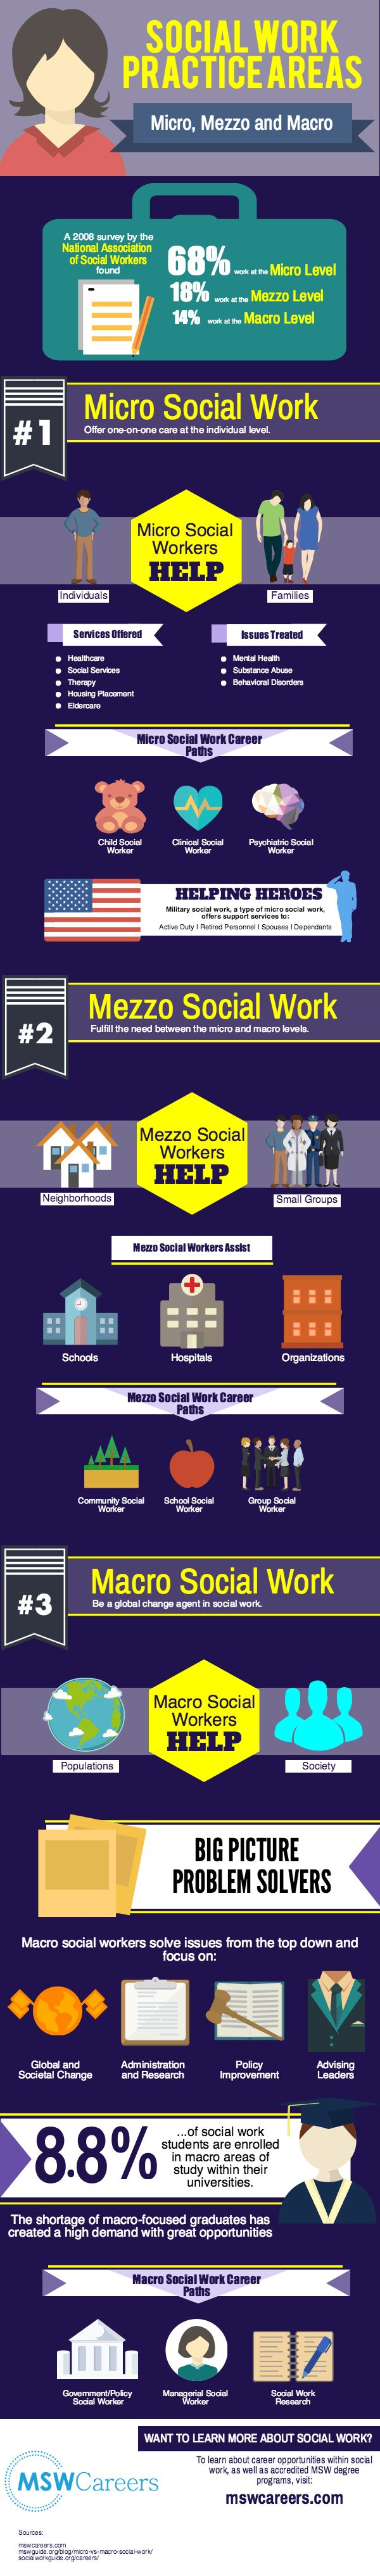 "Micro, Mezzo, and Macro When many people hear the term ""social worker"" they associate the career with commonly known roles such as behavioral therapist, school counselor, case worker or mental health counselor. What aspiring students and other outside the practice may not realize is that the social work profession actually splits its key practice spheres"